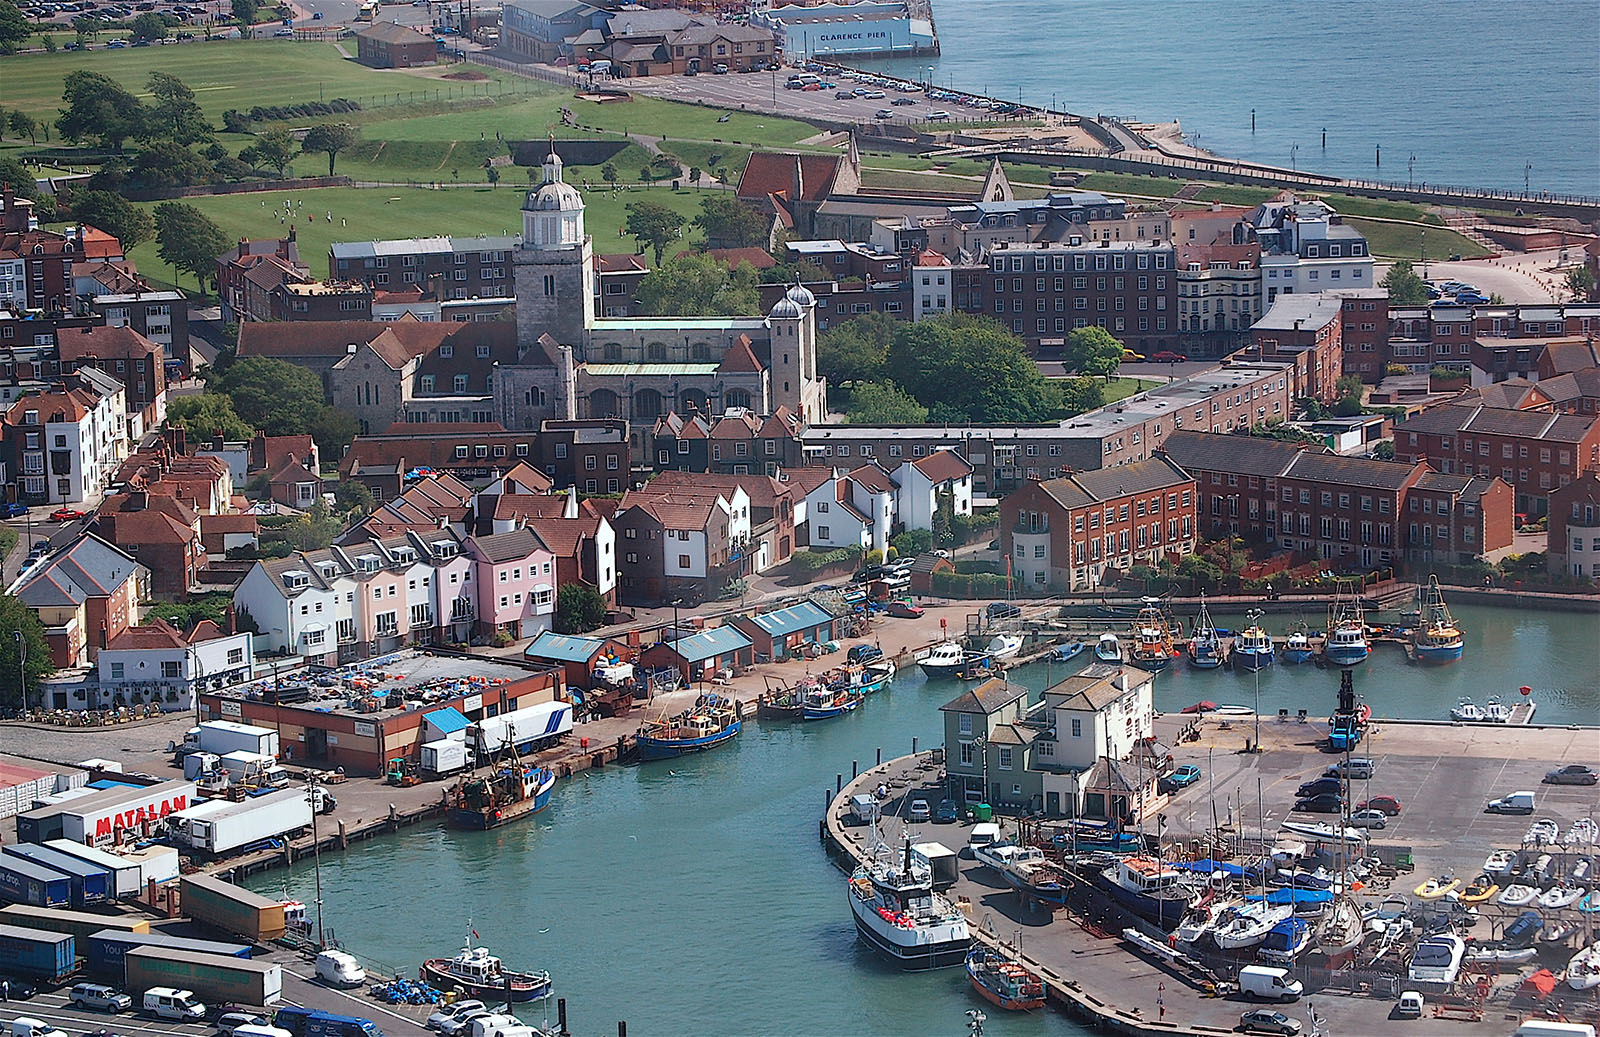 Old Portsmouth as seen from the Spinnaker Tower toward Portsmouth Cathedral and Southsea.